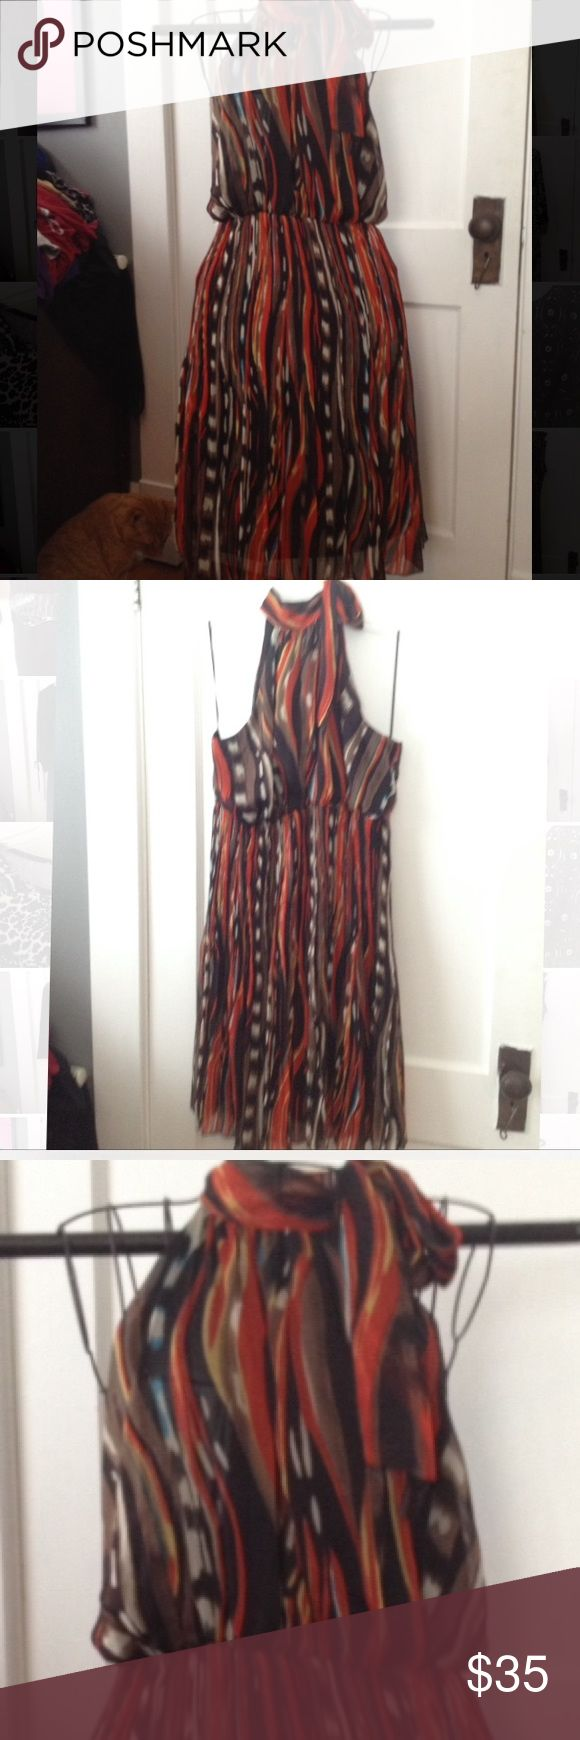 """Beautiful Ashley Stewart flowy dress. Gorgeous Ashley Stewart printed dress. Size 16. Hard to take a pic that did it justice. Tie at neck. Sleeveless. Lining. Length: 41"""" from shoulder; 32"""" from armpit. Hardly worn. Ashley Stewart Dresses"""